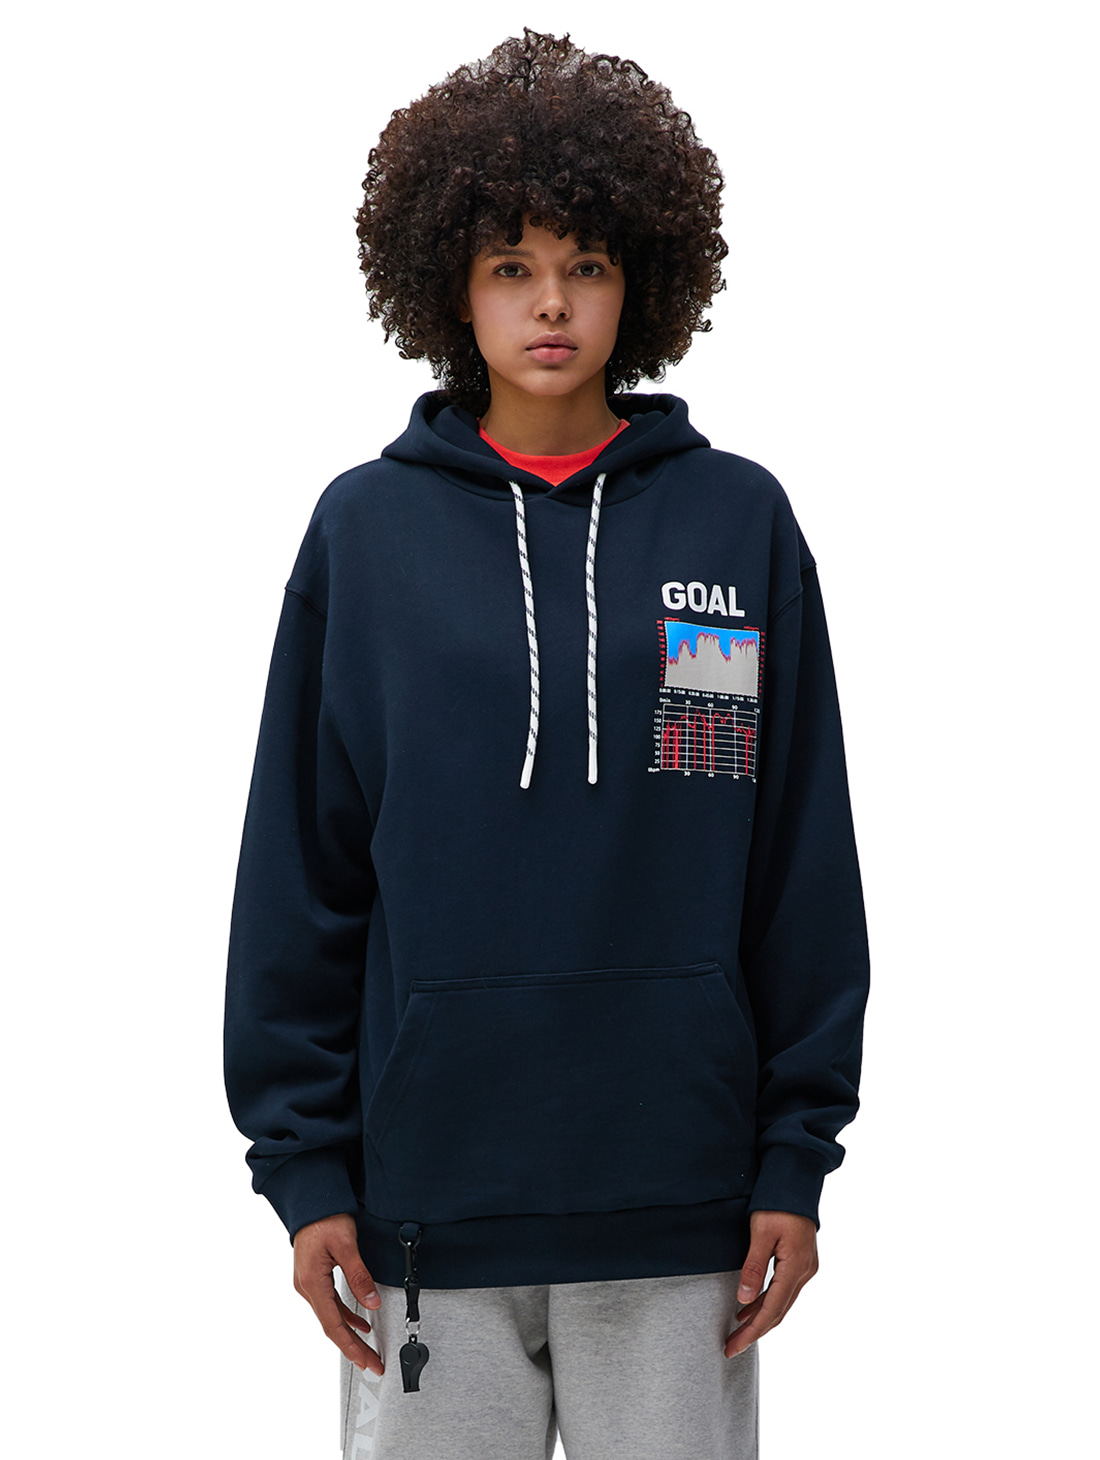 GOALSTUDIO PULSE GRAPHIC HOODIE - NAVY